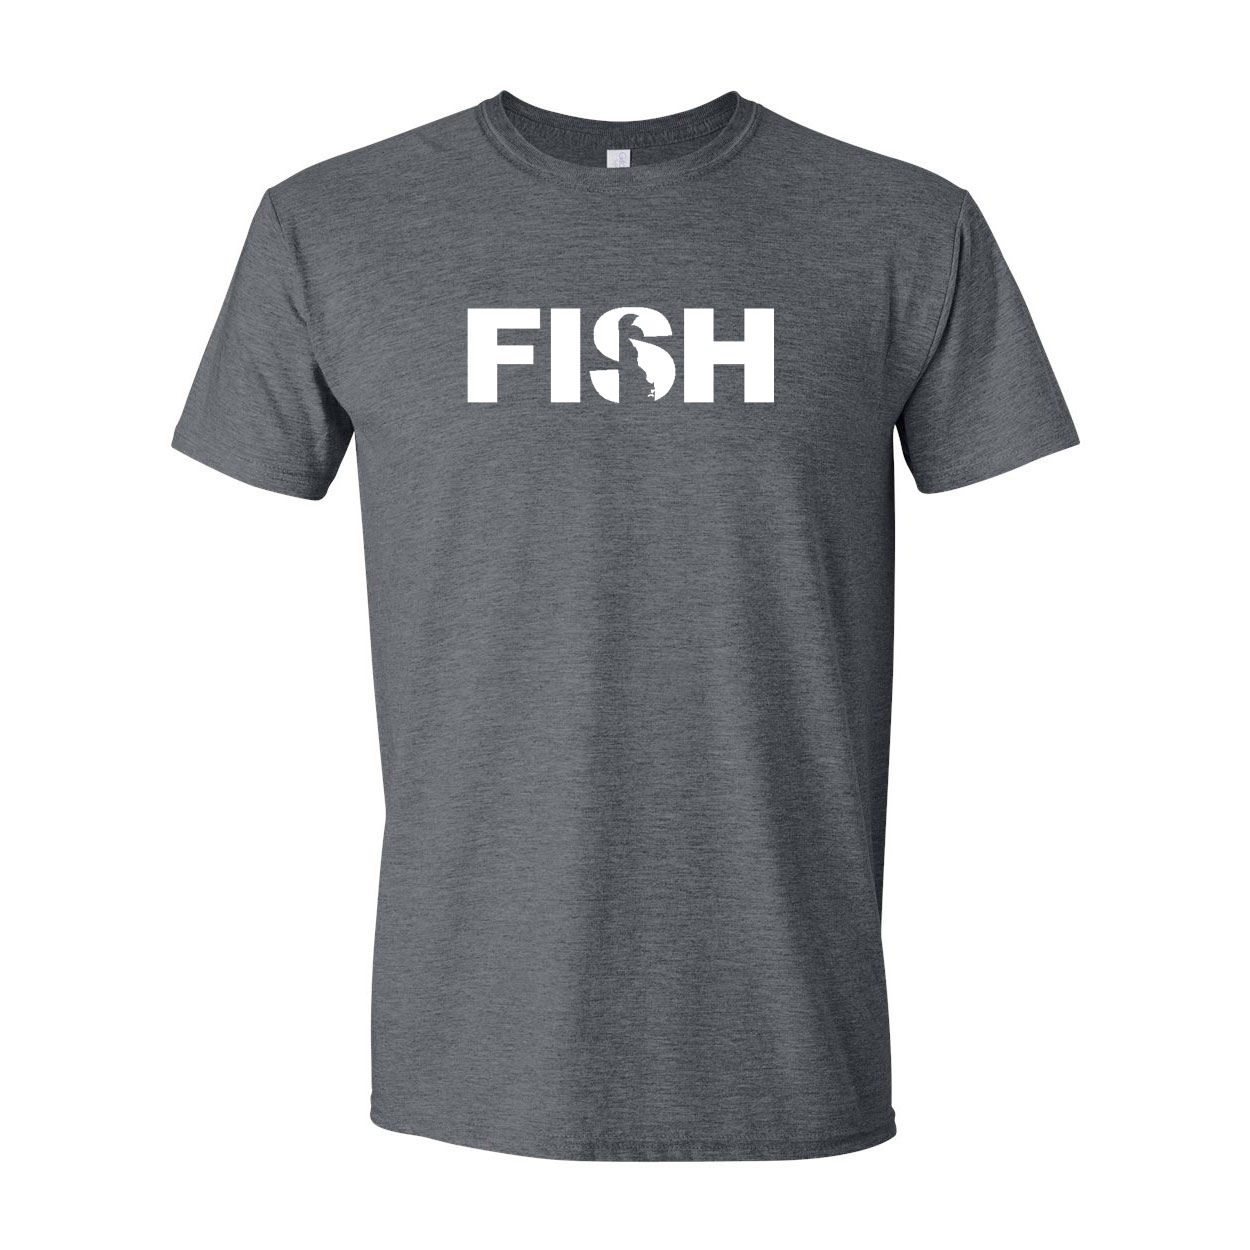 Fish Delaware Classic T-Shirt Dark Heather Gray (White Logo)